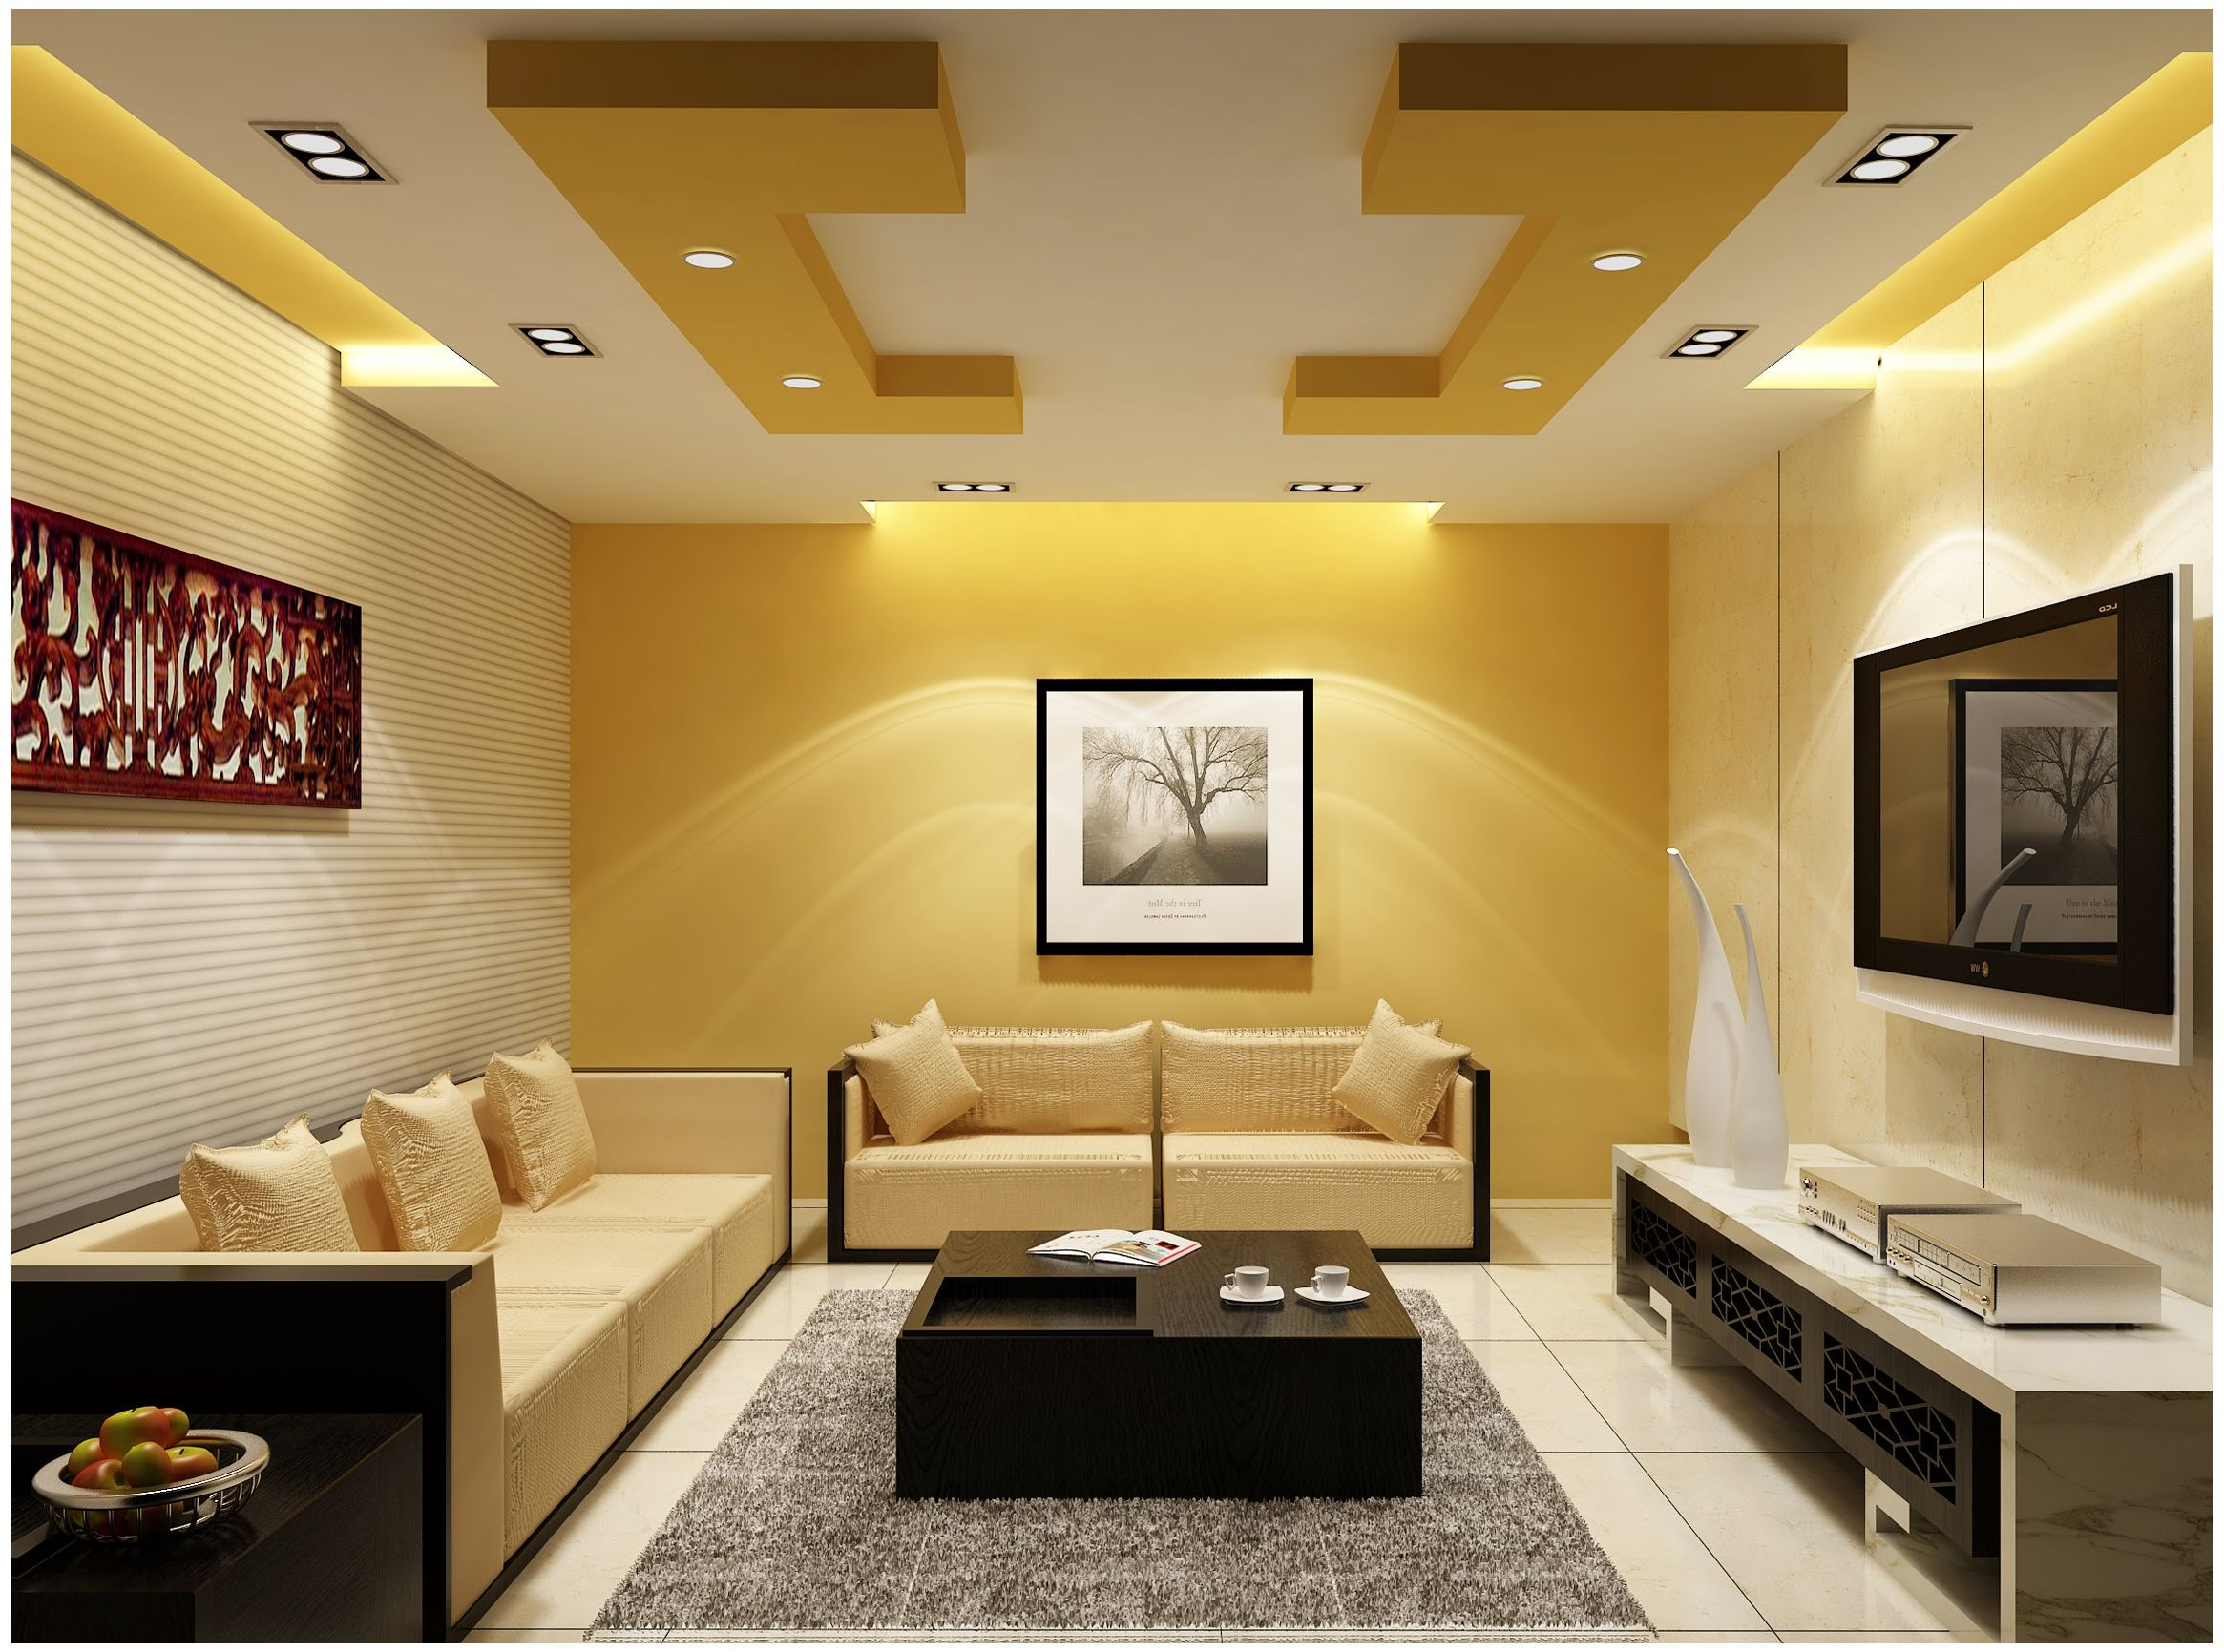 PVC Ceiling PVC ceilings are ideal for cladding ceilings ...